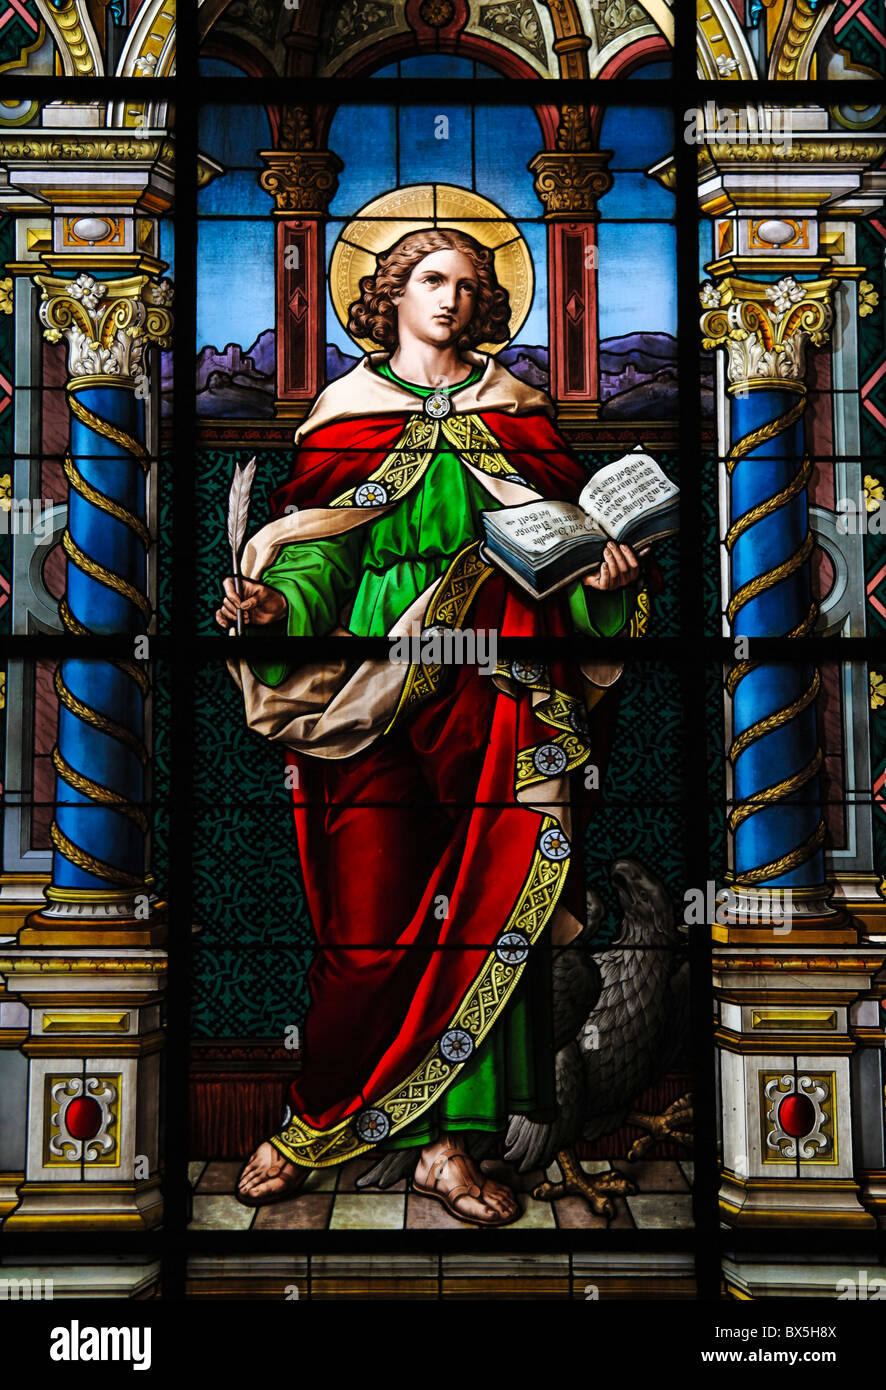 Saint John the Evangelist. Stained glass window created by F. Zettler (1878-1911) at the German Church (St. Gertrude's Stock Photo